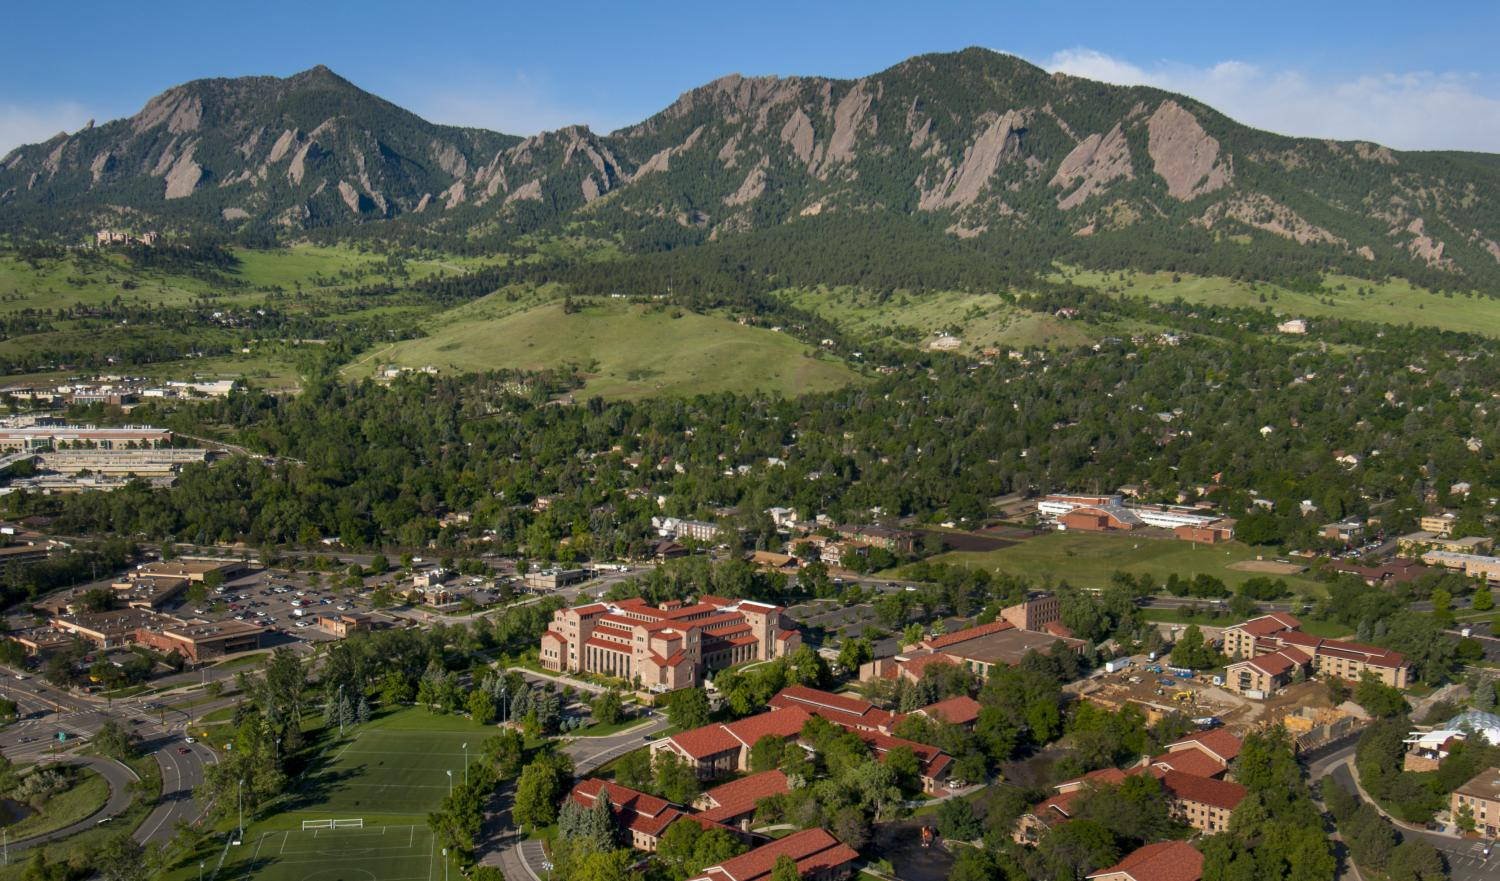 Aerial scenic of the Law School Building and surrounding area